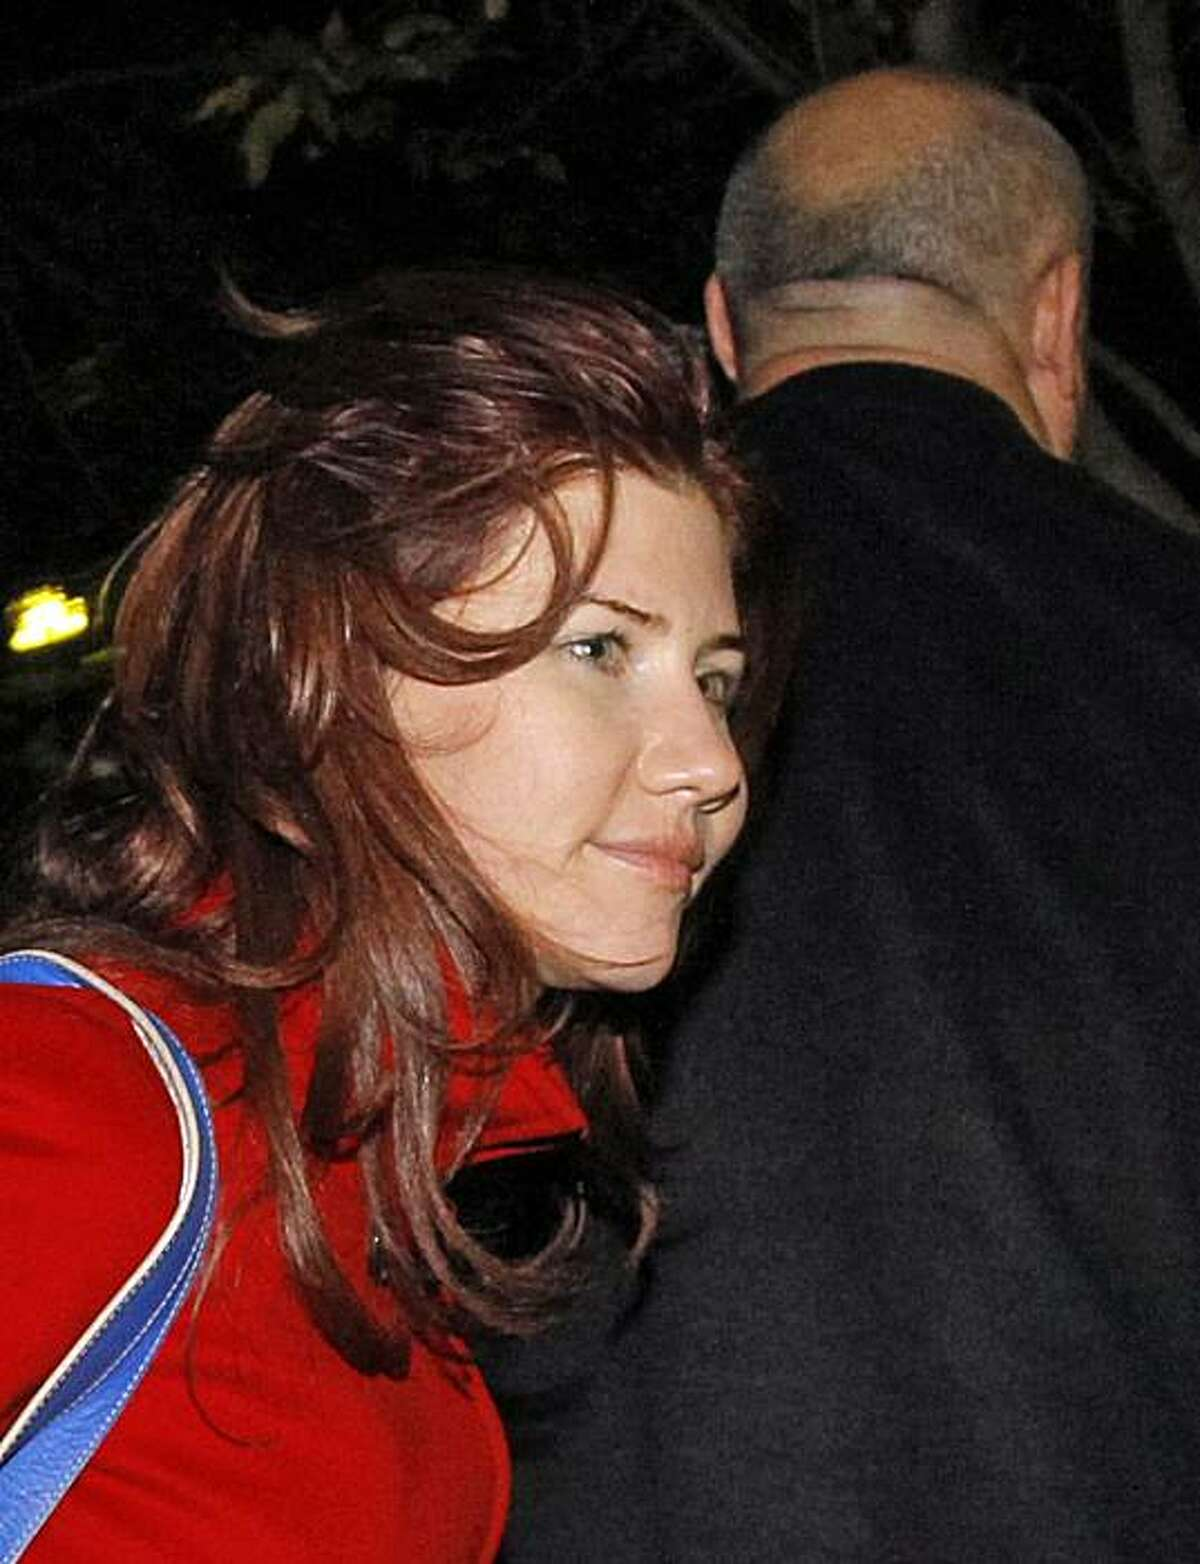 In this Thursday, Oct. 7, 2010 file photo, Anna Chapman, a Russian national who was deported from the U.S. this summer for alleged spying for Russia, is seen with an unidentified security man at the farewell ceremony for a U.S. astronaut and two Russian cosmonauts at Baikonur cosmodrome, Kazakhstan. President Dmitry Medvedev bestowed the country's highest state honor Monday Oct 18 2010 on the Russian sleeper agents deported from the United States as part of the countries' biggest spy swap since the Cold War, the Interfax news agency reported.